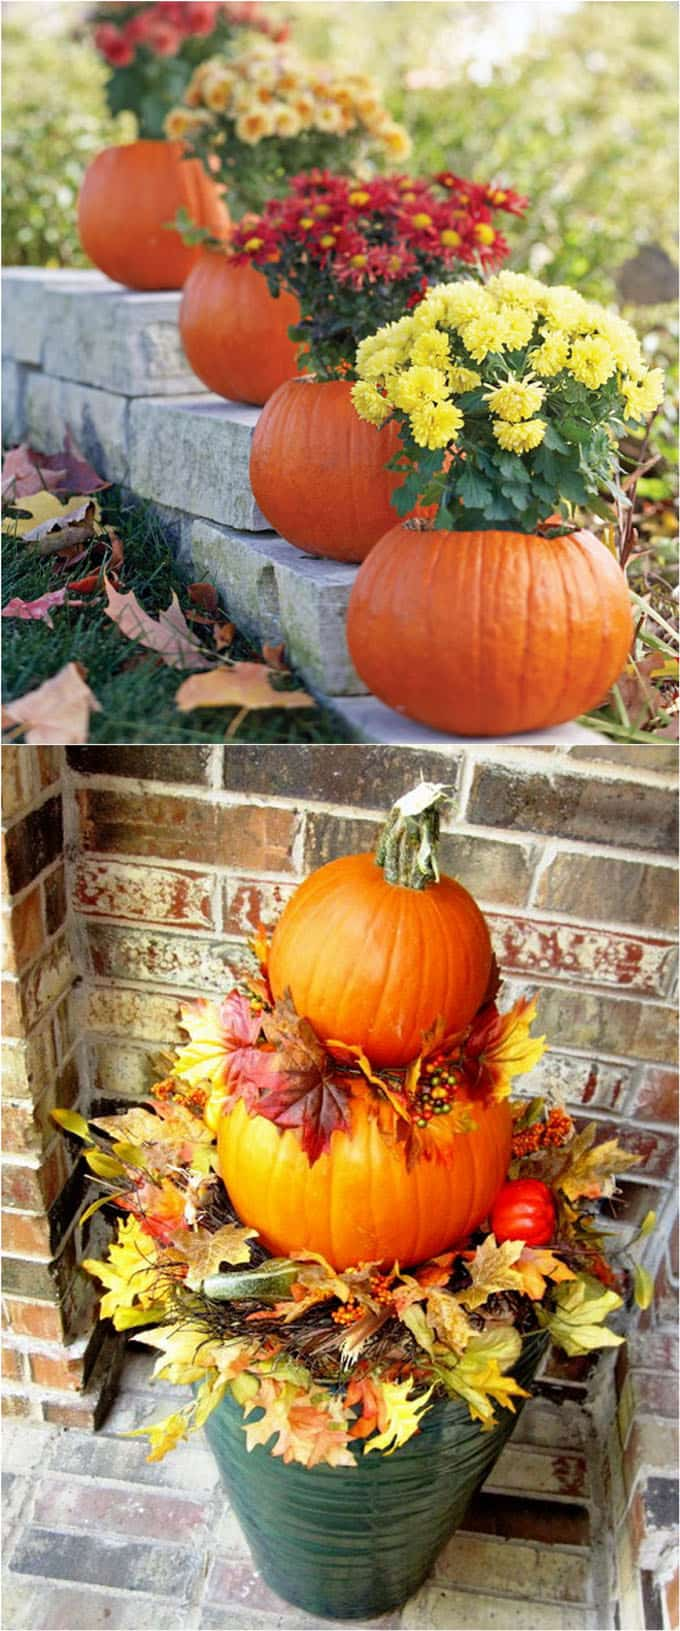 25 splendid front door diy fall decorations a piece of for Pictures of fall decorations for outdoors